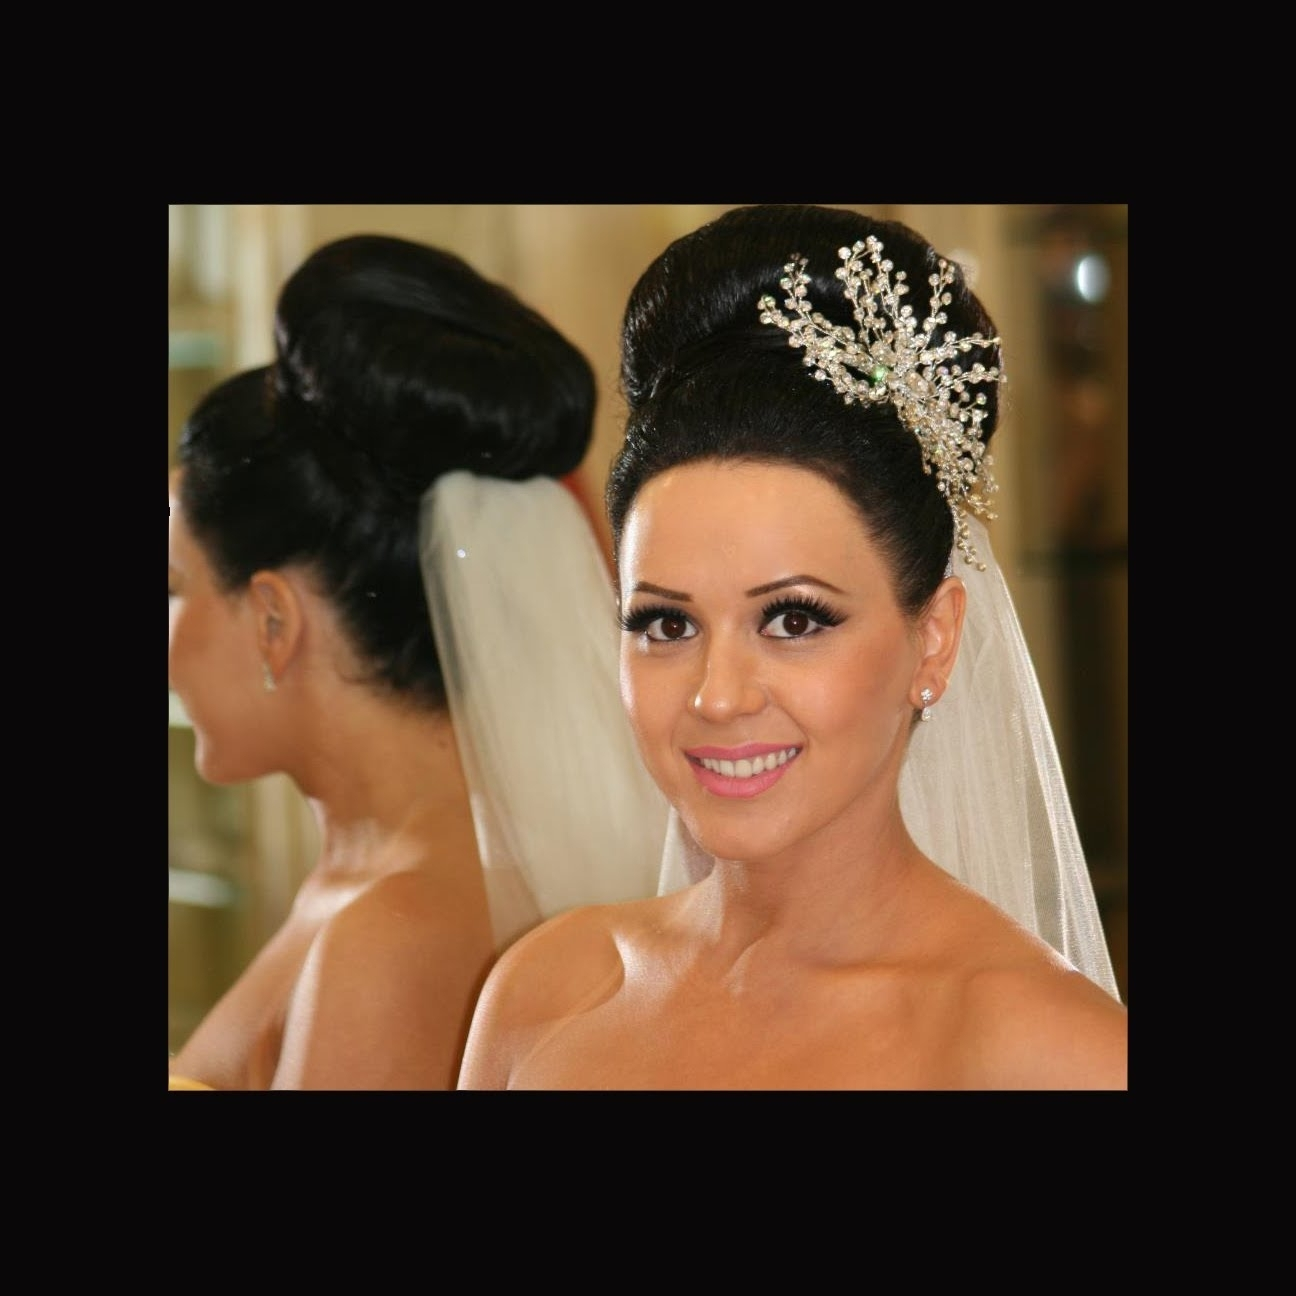 Wedding Hairstyles: Bridal Bun, Dry Waves, Curly Updo, Natural, Sexy With Regard To Widely Used Wedding Hairstyles For Long Curly Hair With Veil (View 10 of 15)